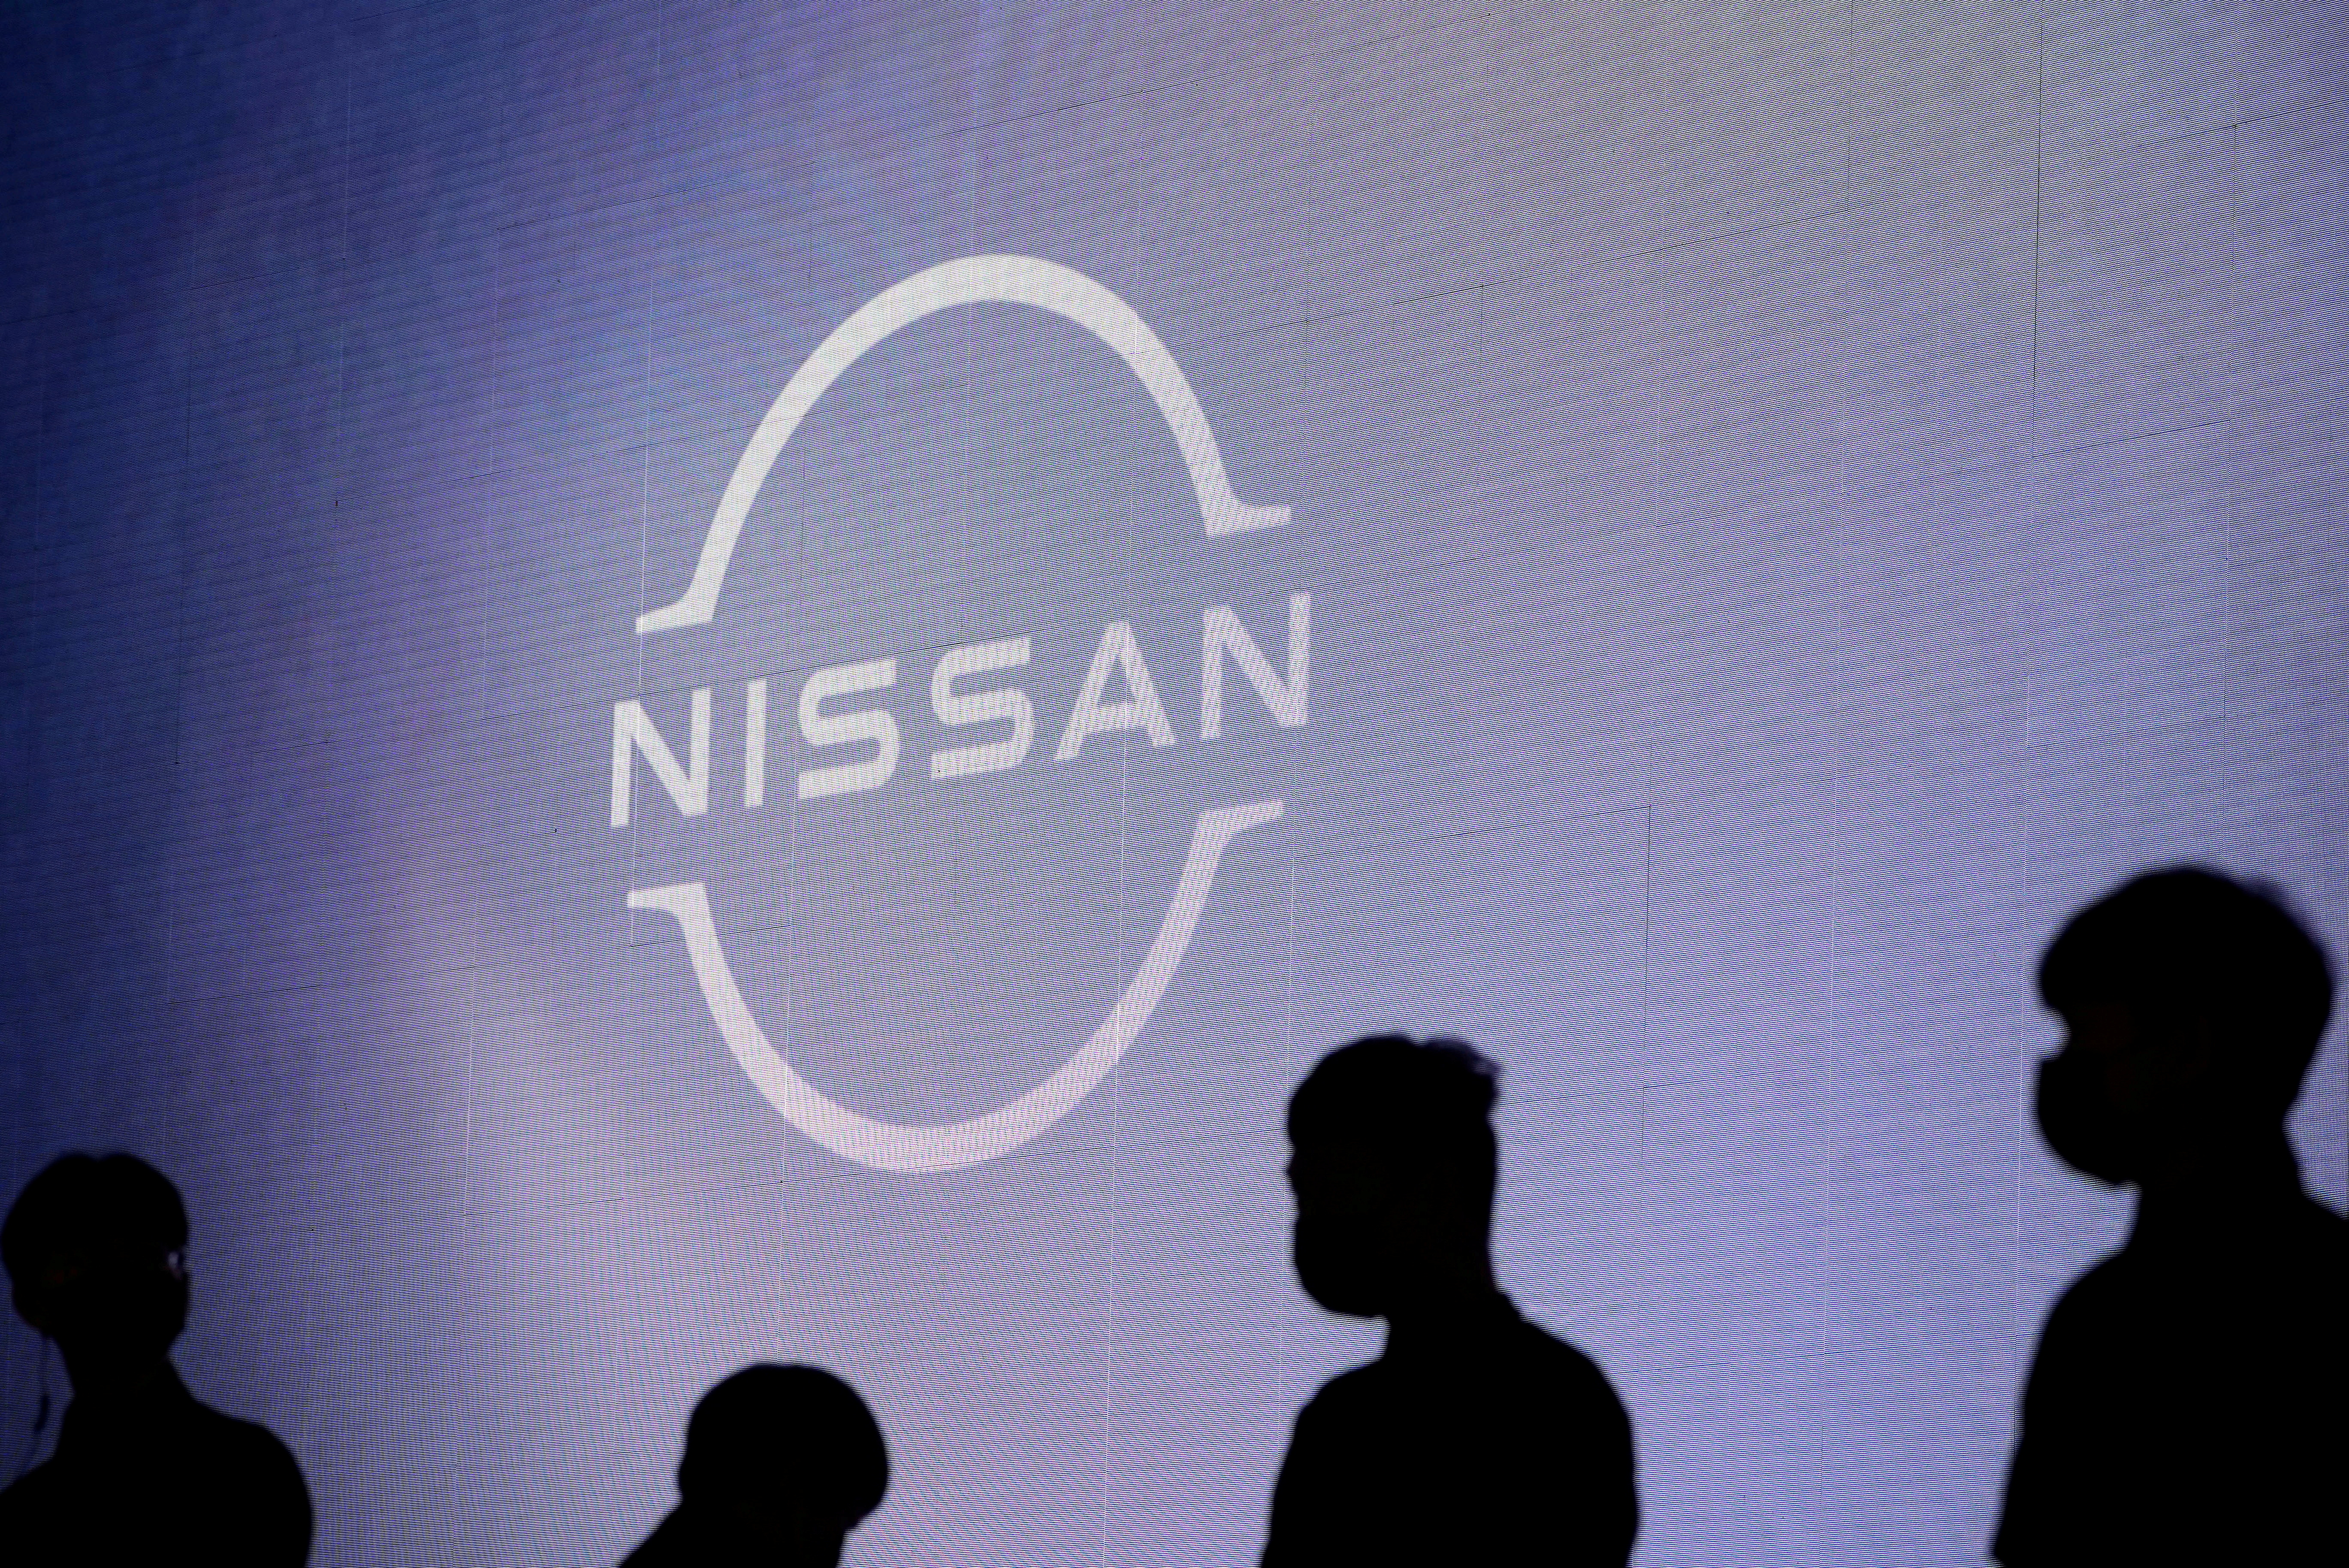 People stand near the Nissan logo during a media day for the Auto Shanghai show in Shanghai, China, April 20, 2021. REUTERS/Aly Song